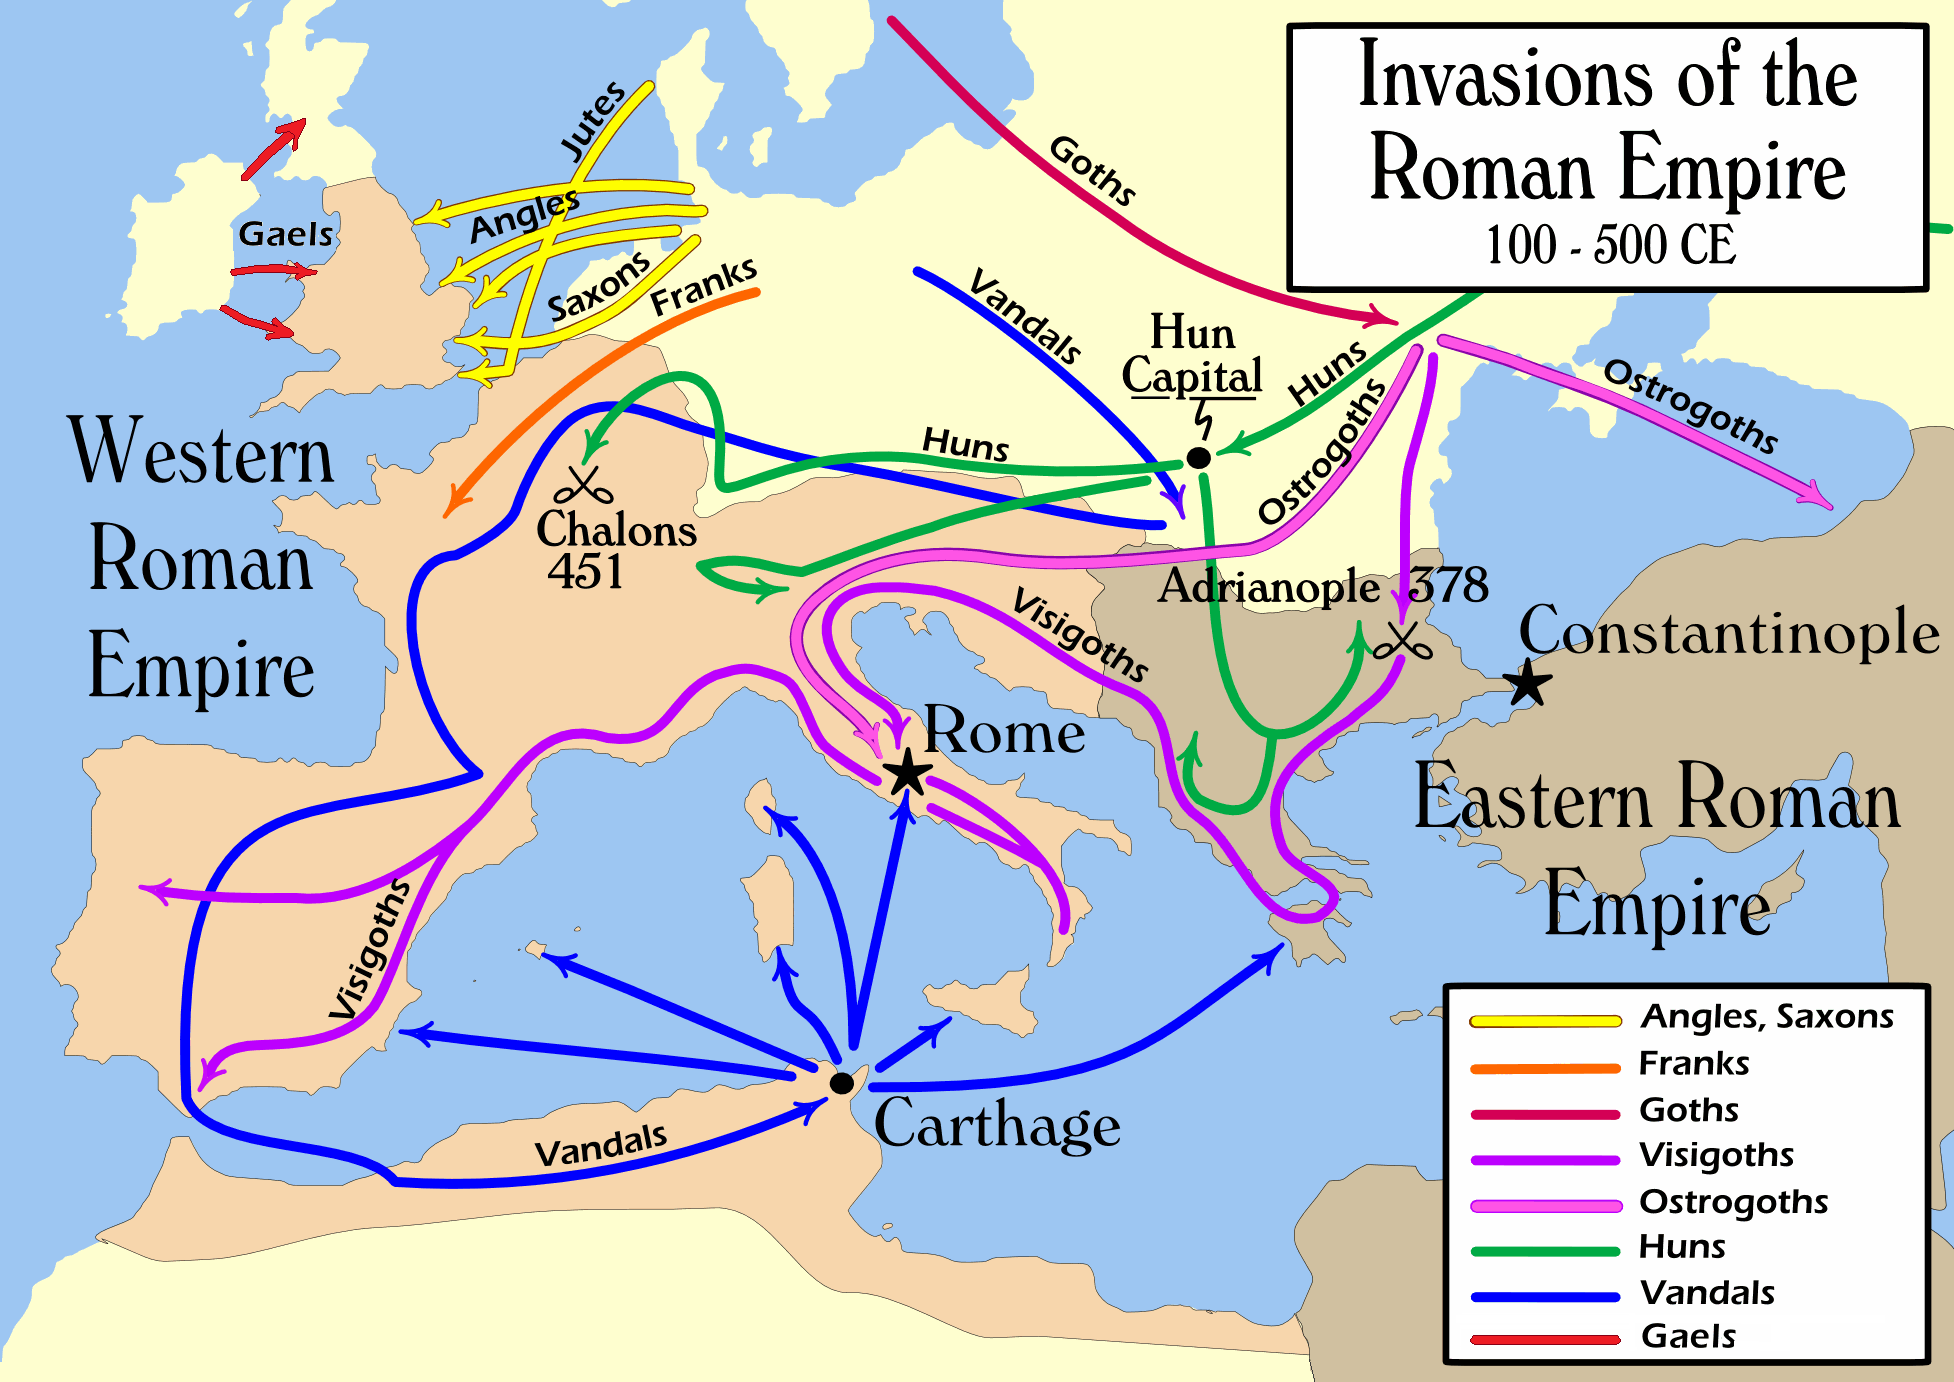 Worksheet. FileInvasions of the Roman Empire 1png  Wikimedia Commons